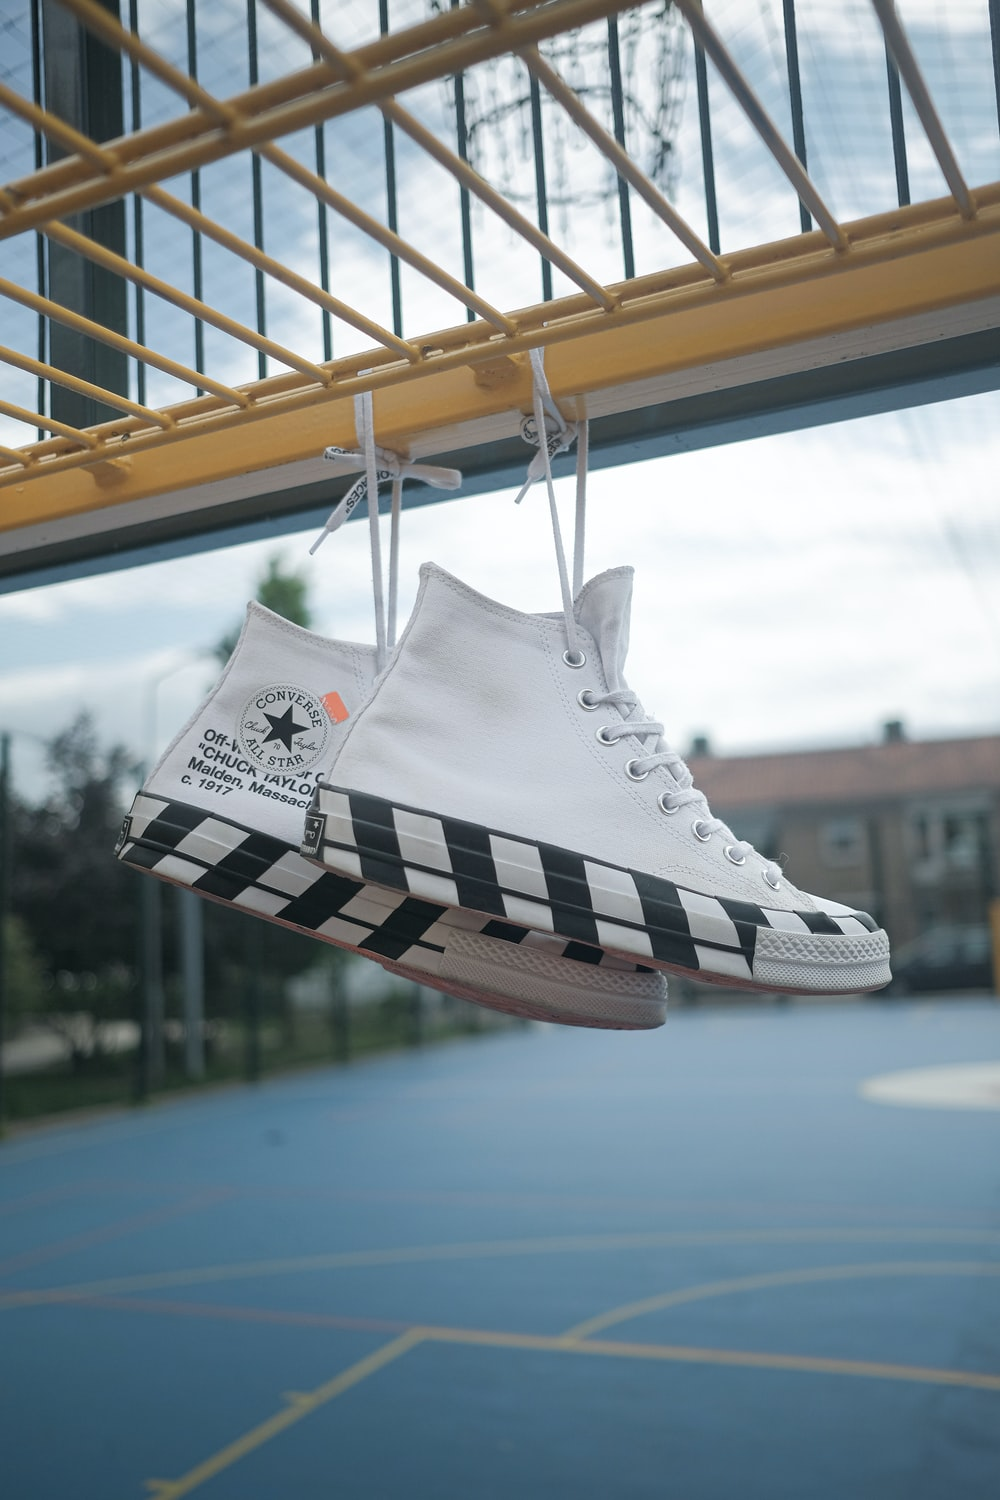 pair of white Converse All Star sneakers